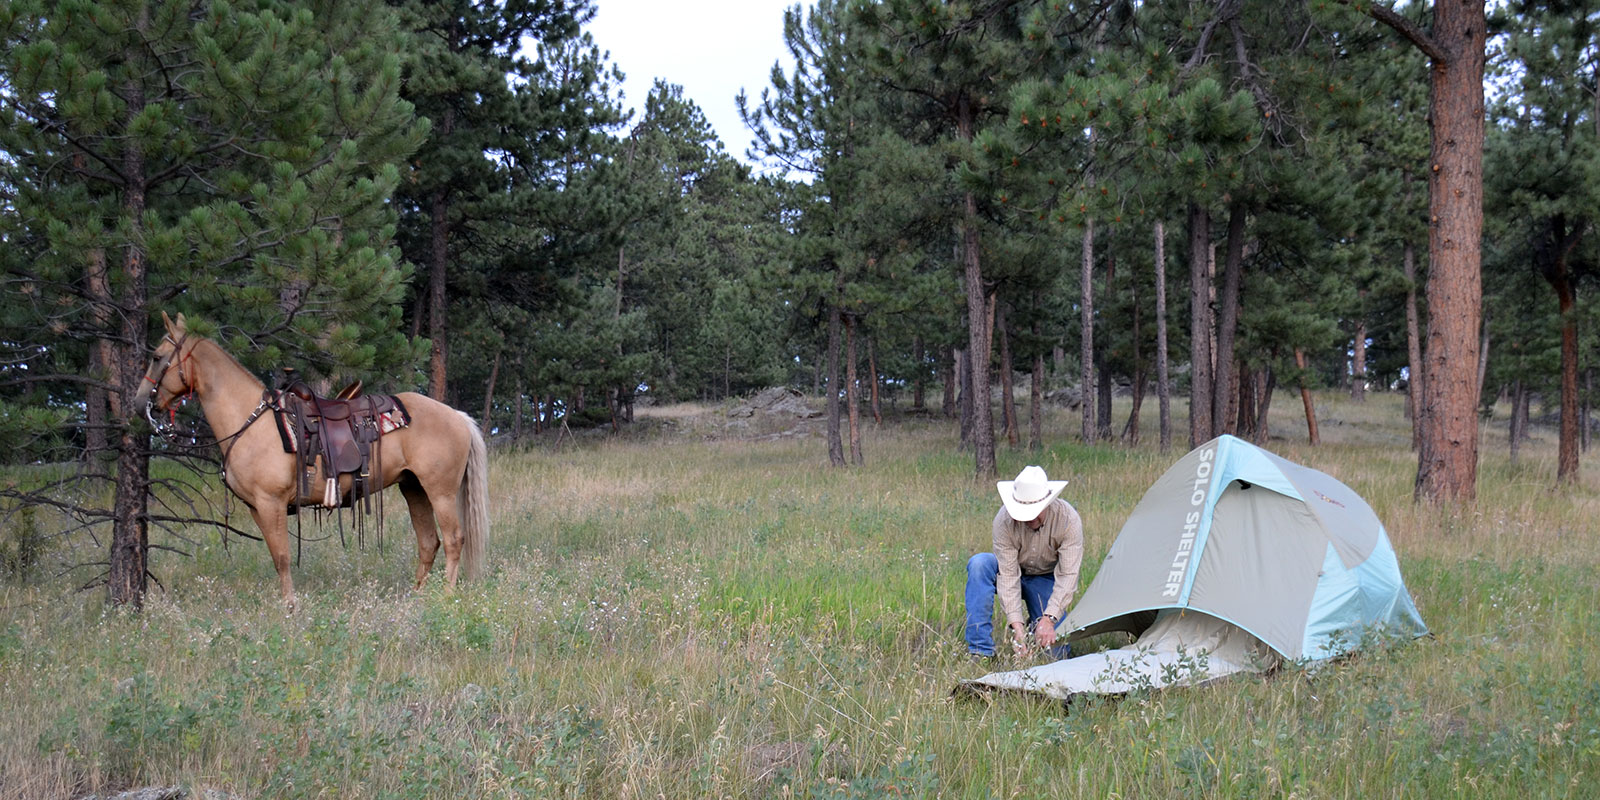 Western Horseback Camping with 5 Owls shelters